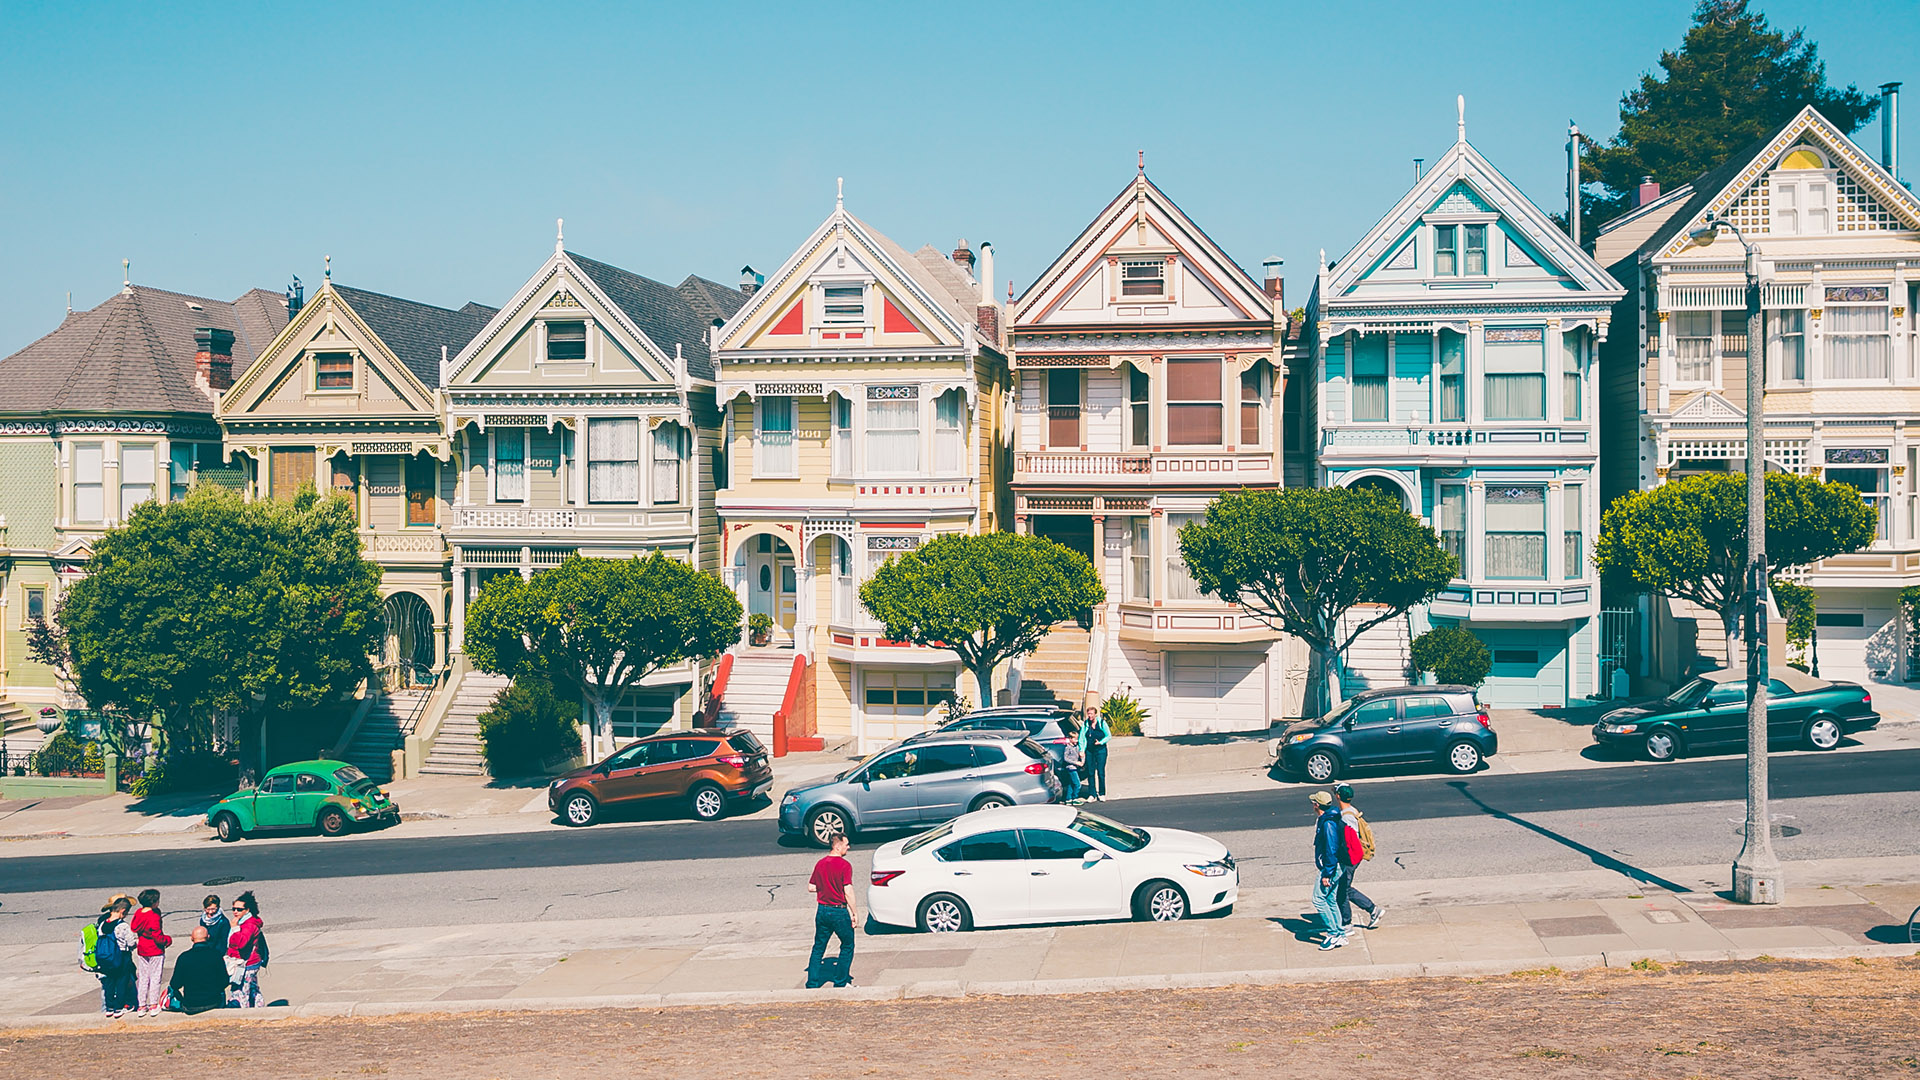 Painted Ladies, Sehenswürdigkeit, Top 5 Cafes in San Francisco, Reisetipps, San Francisco, San Francisco Tipps, USA, Reiseblog, Lifestyle, advanceyourstyle